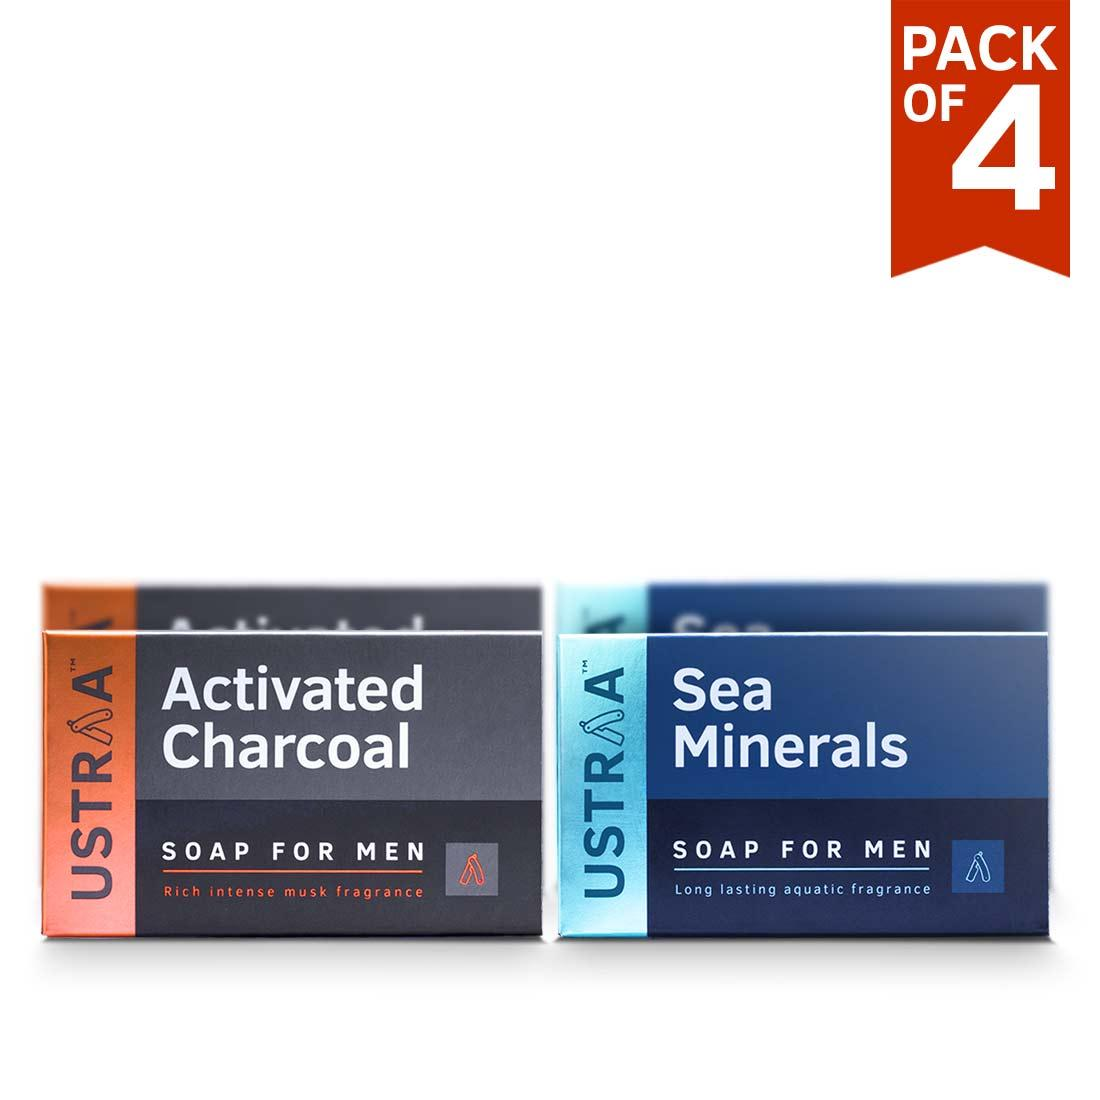 Ustraa Deo Soap for Men with Sea Minerals & Activated Charcoal, 100 g (Pack of 4)